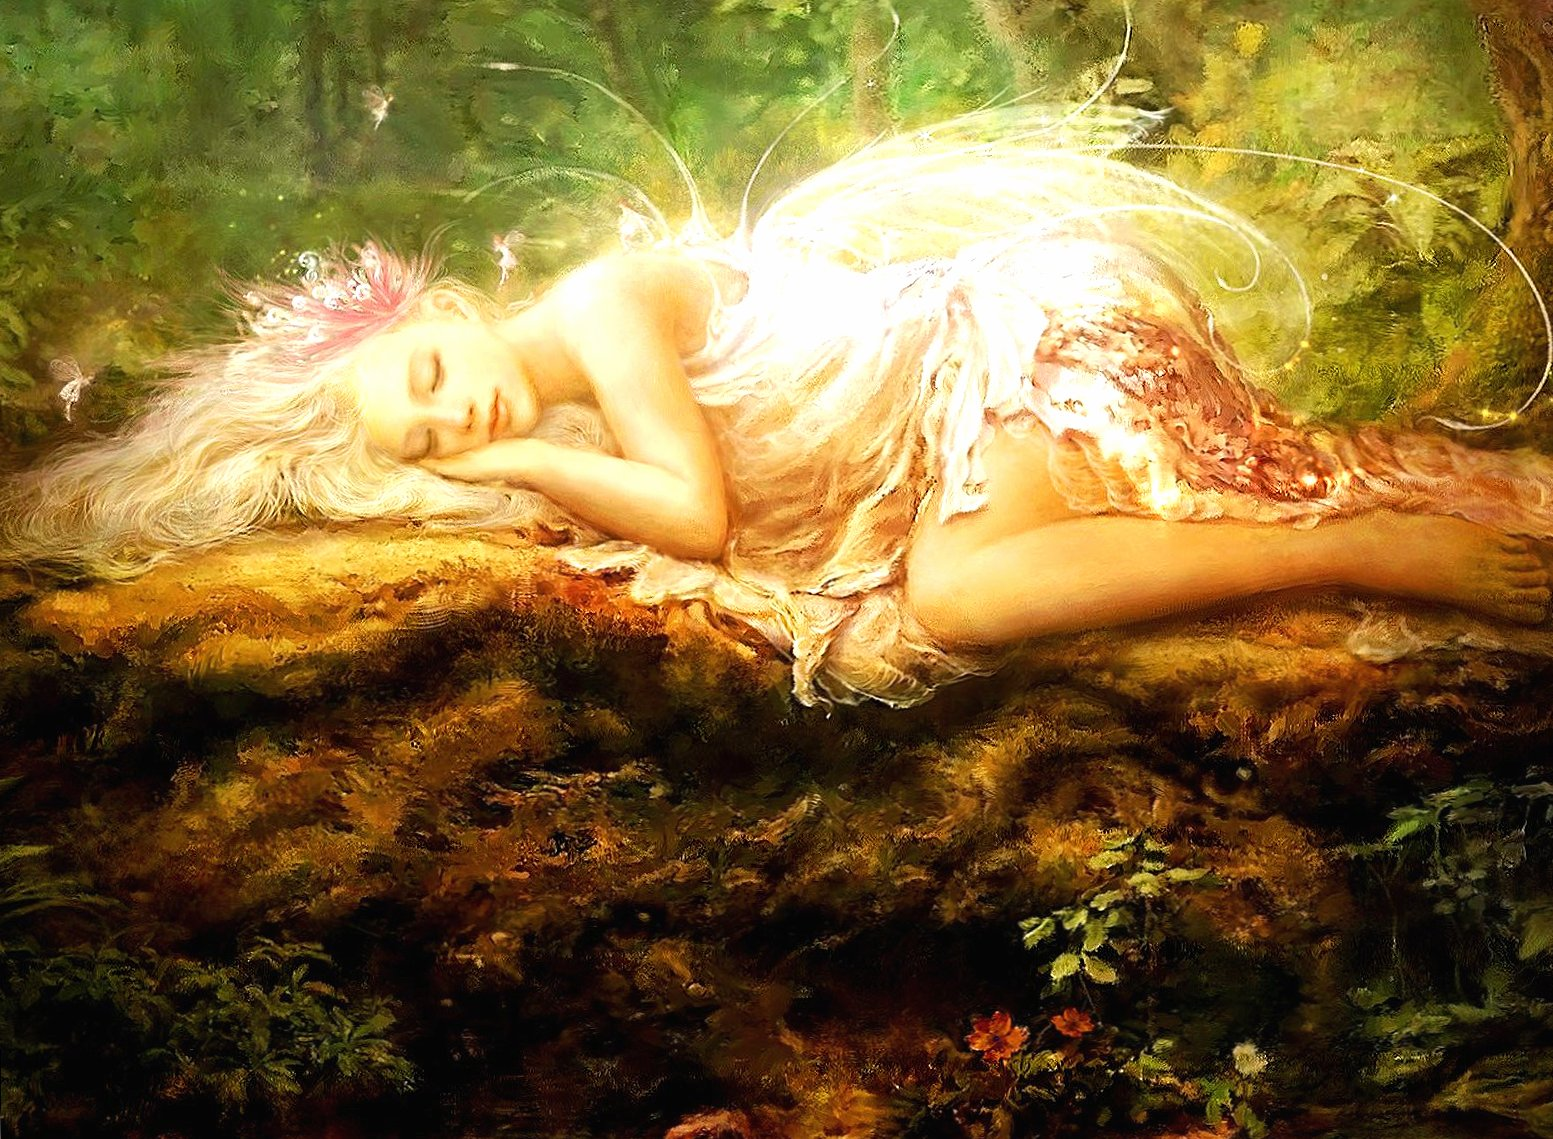 Sleeping sweet fairy wallpapers HD quality